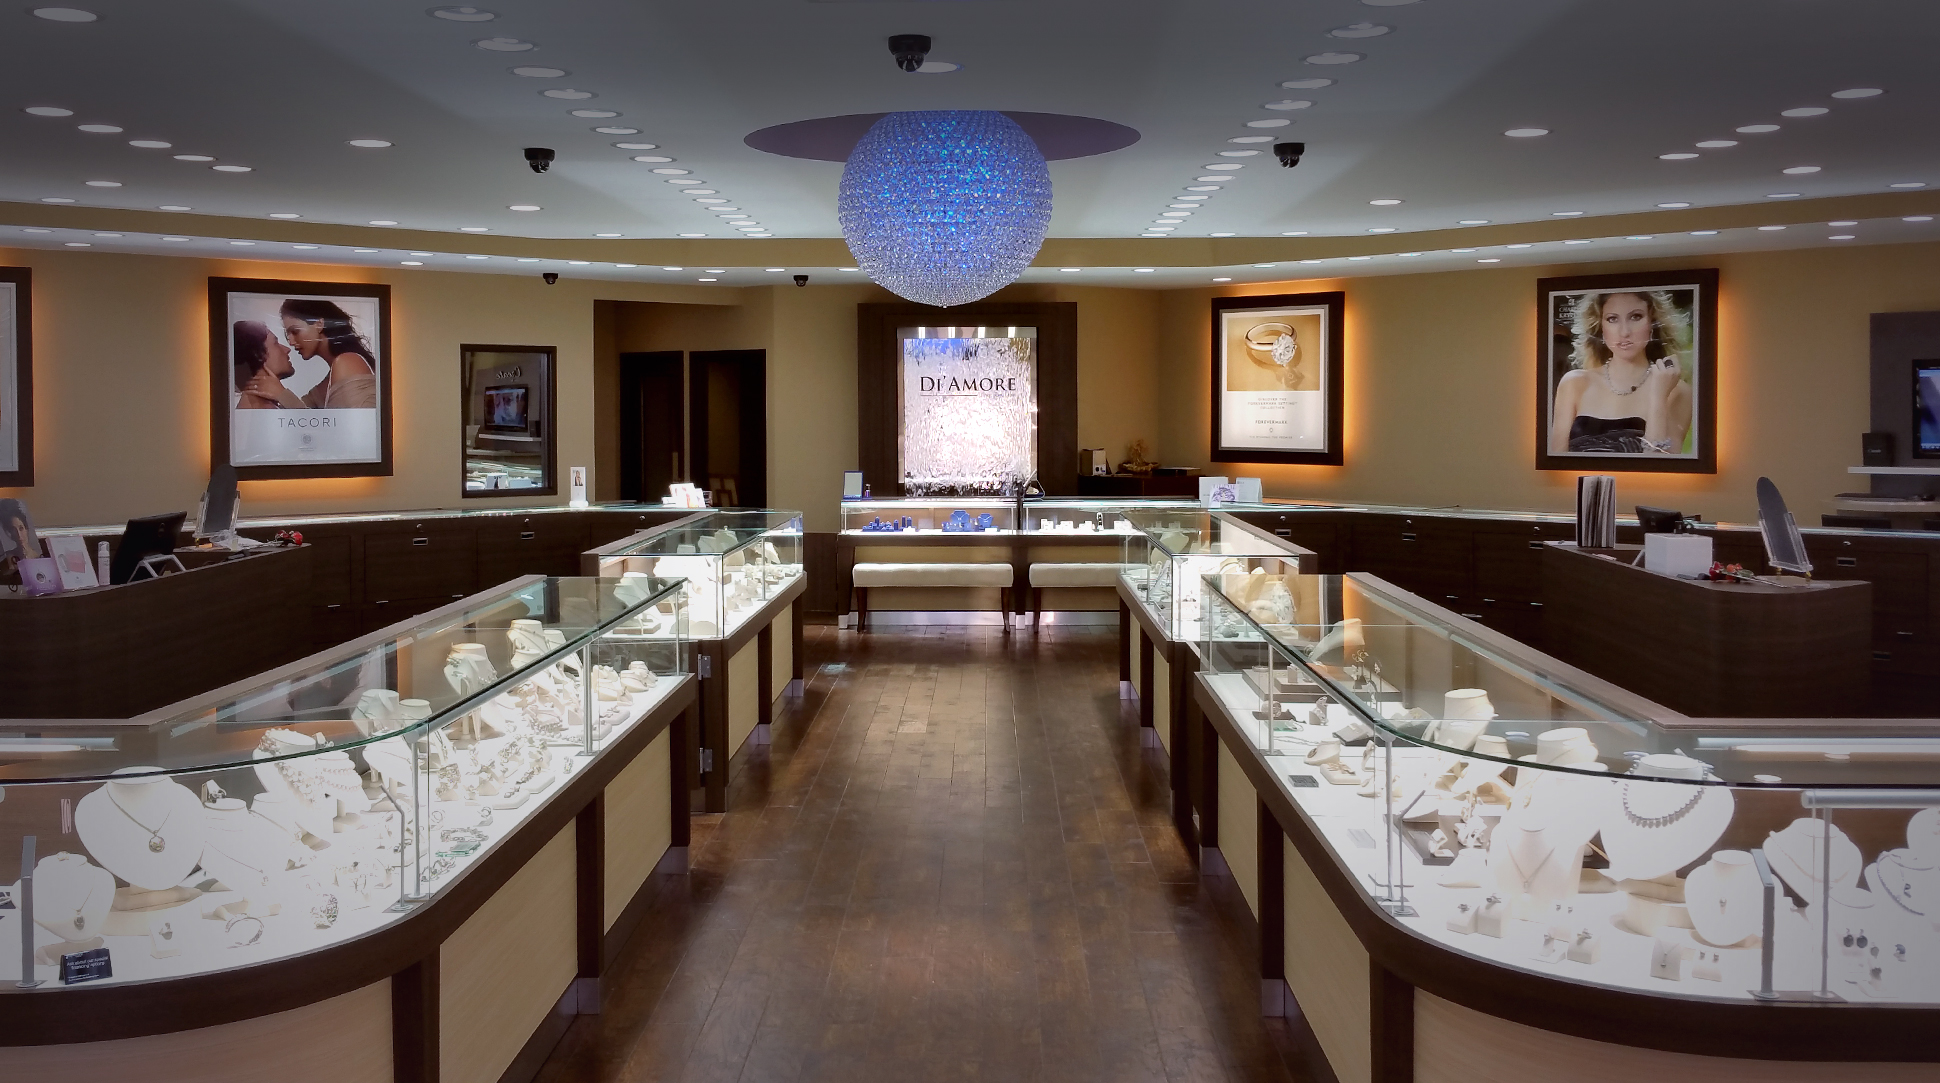 near original used pin jewelers a what globalize when given be getting should fuck beers me to married as diamonds women de diamond marketing jewellery